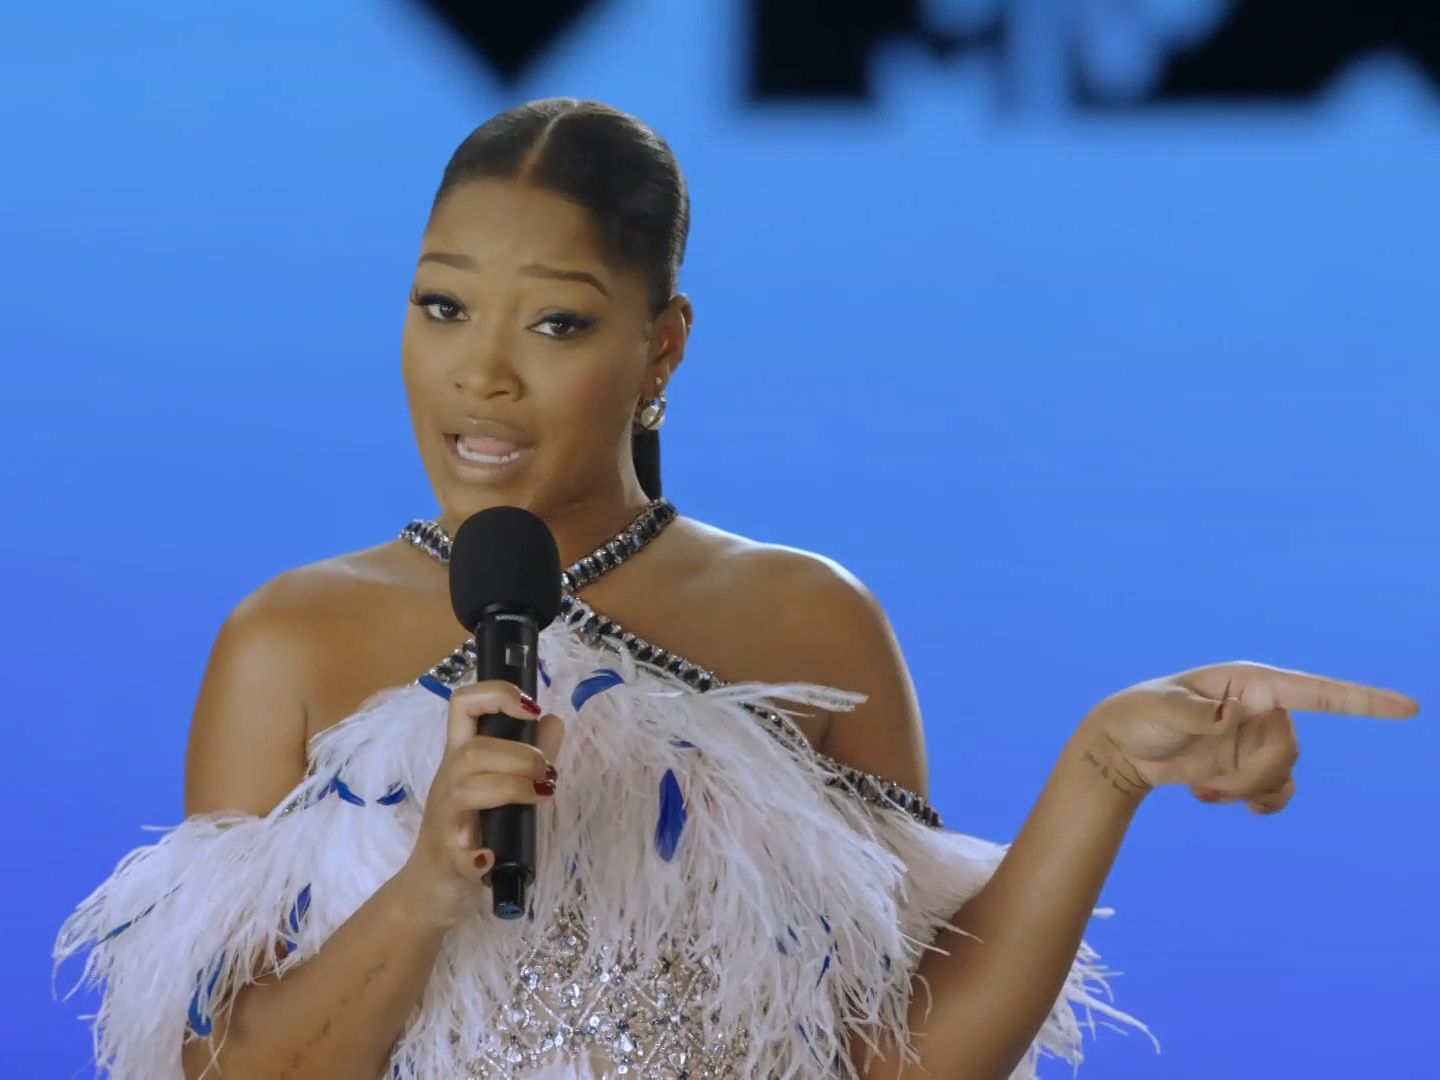 Keke Palmer Opens VMAs With Empowering Speech: 'It's Our Time To Be The Change'